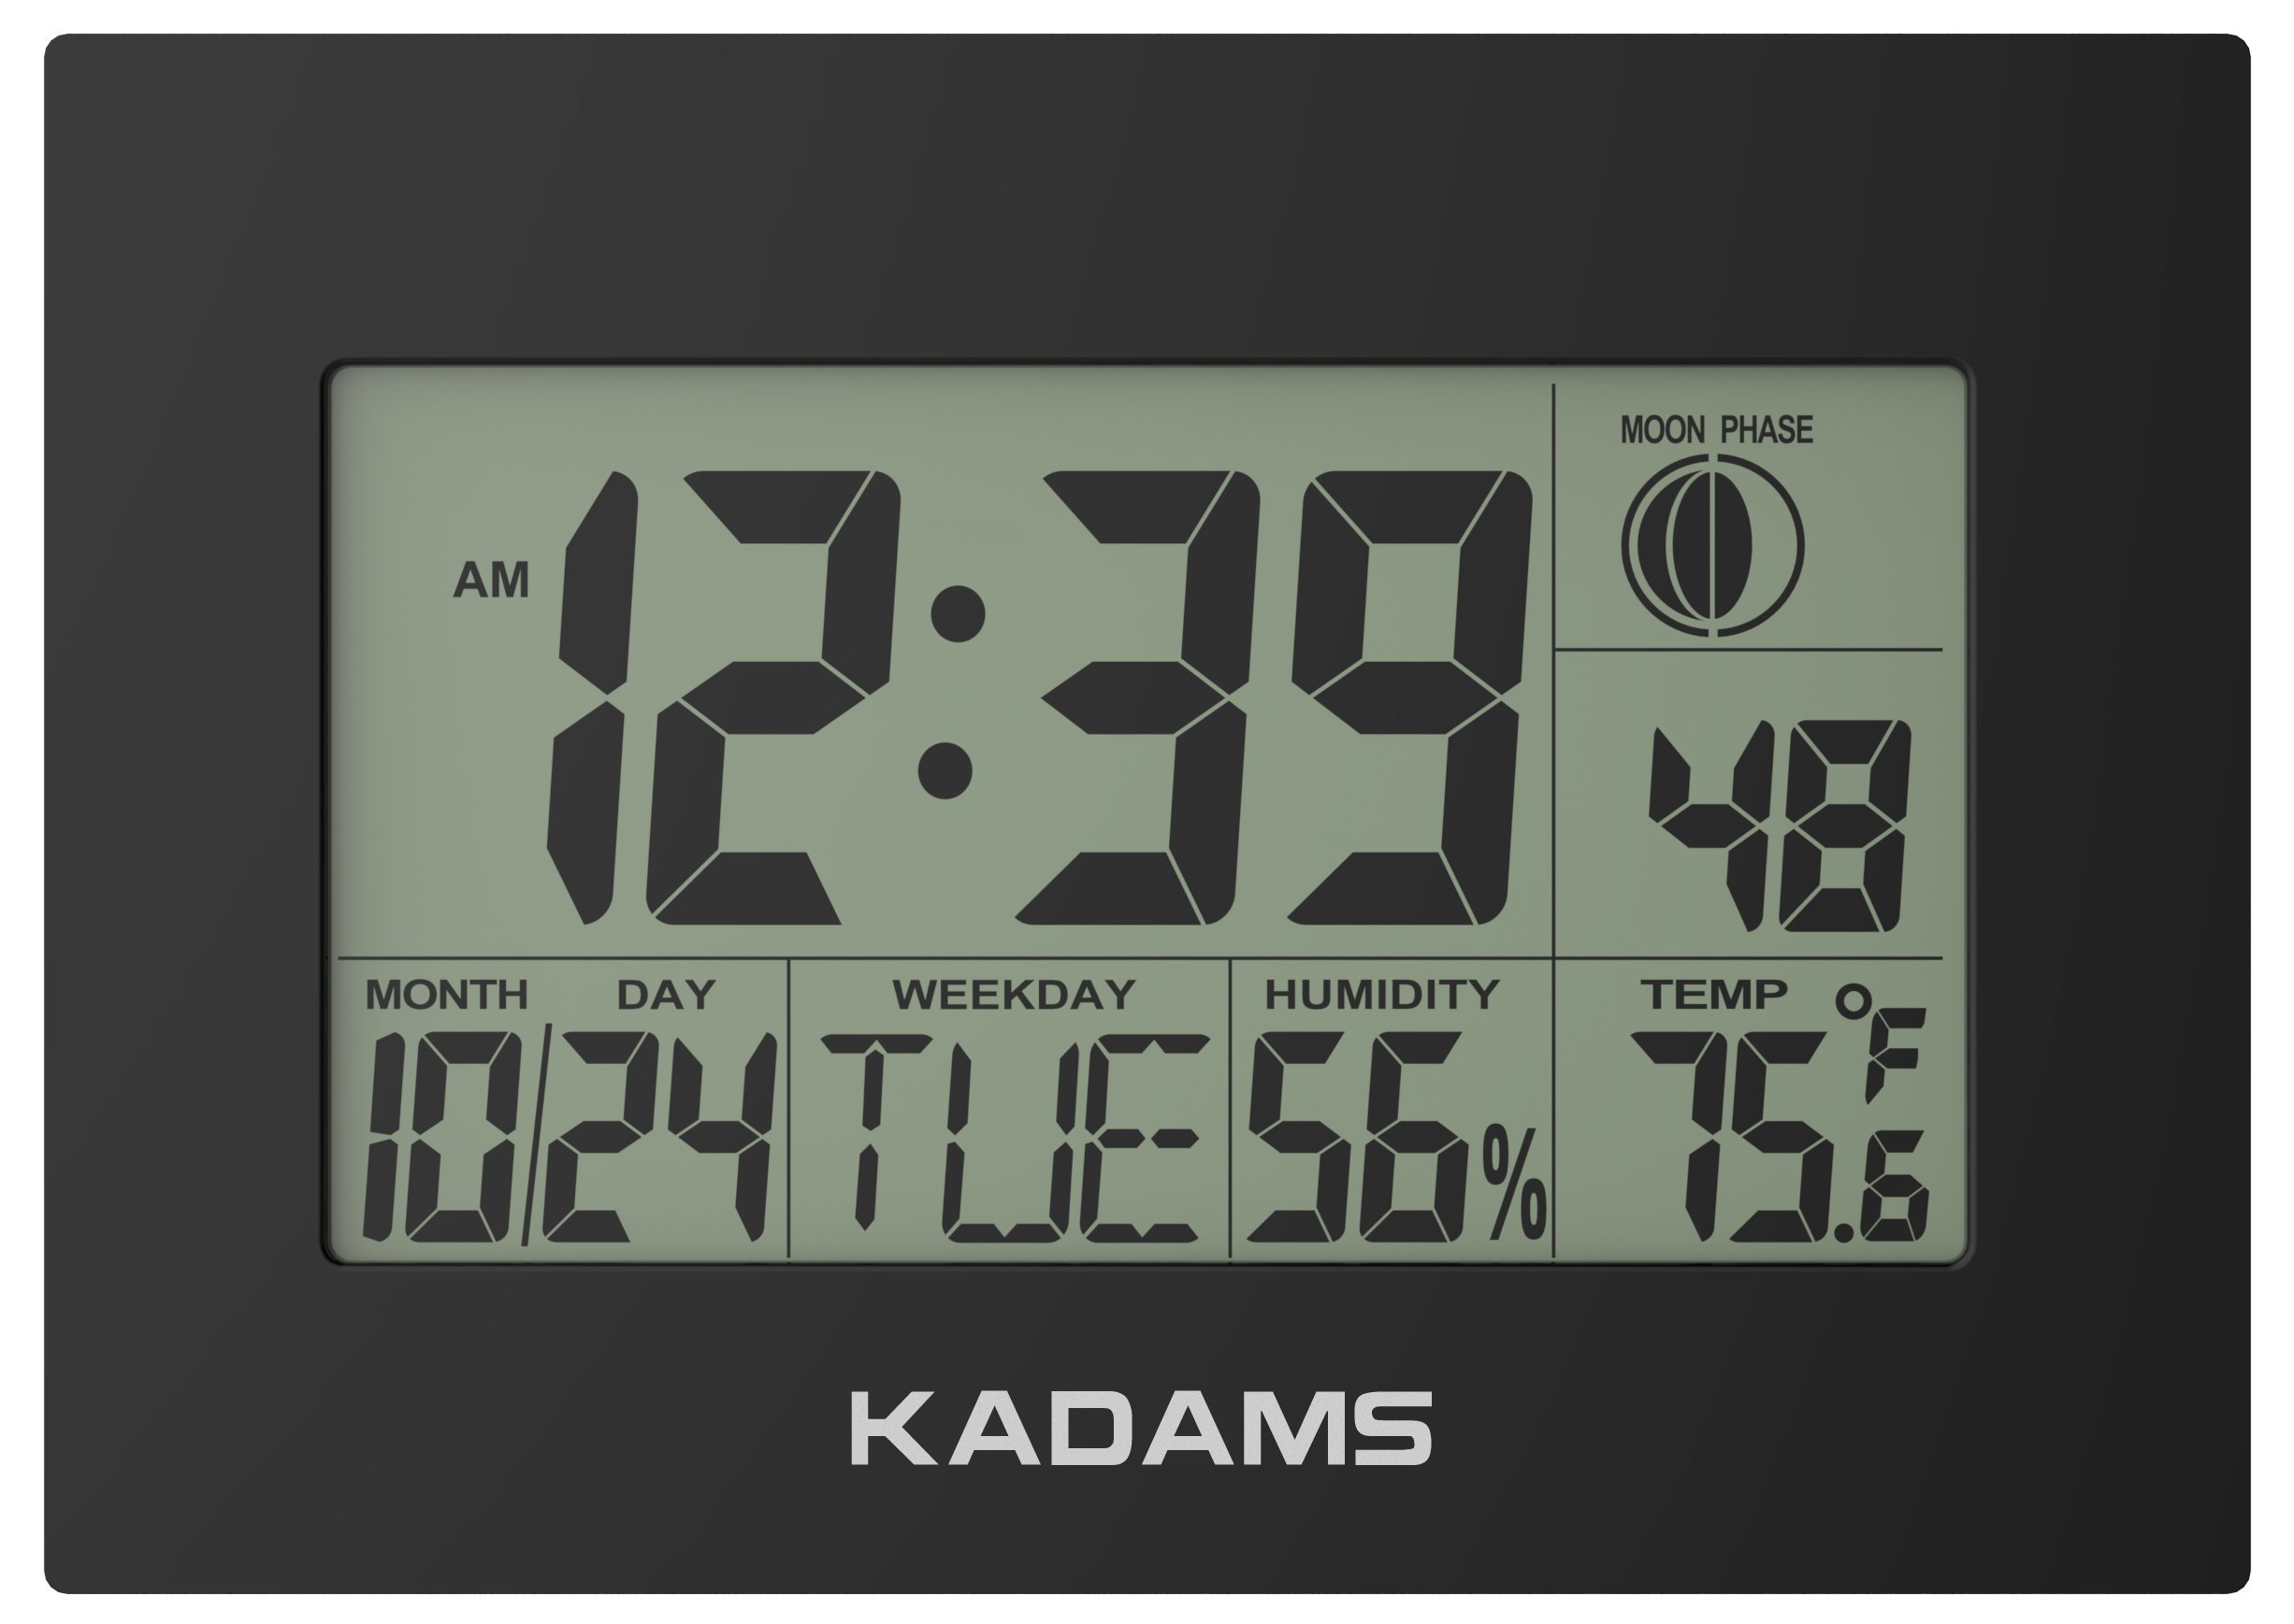 [2018 Version] KADAMS Digital Wall Clock with Seconds Counter, Dual Alarm Snooze Function, Calendar Date, Indoor Temperature, Humidity, Moon Phase, Large Display, Wall Hanging Shelf Desk Stand - BLACK